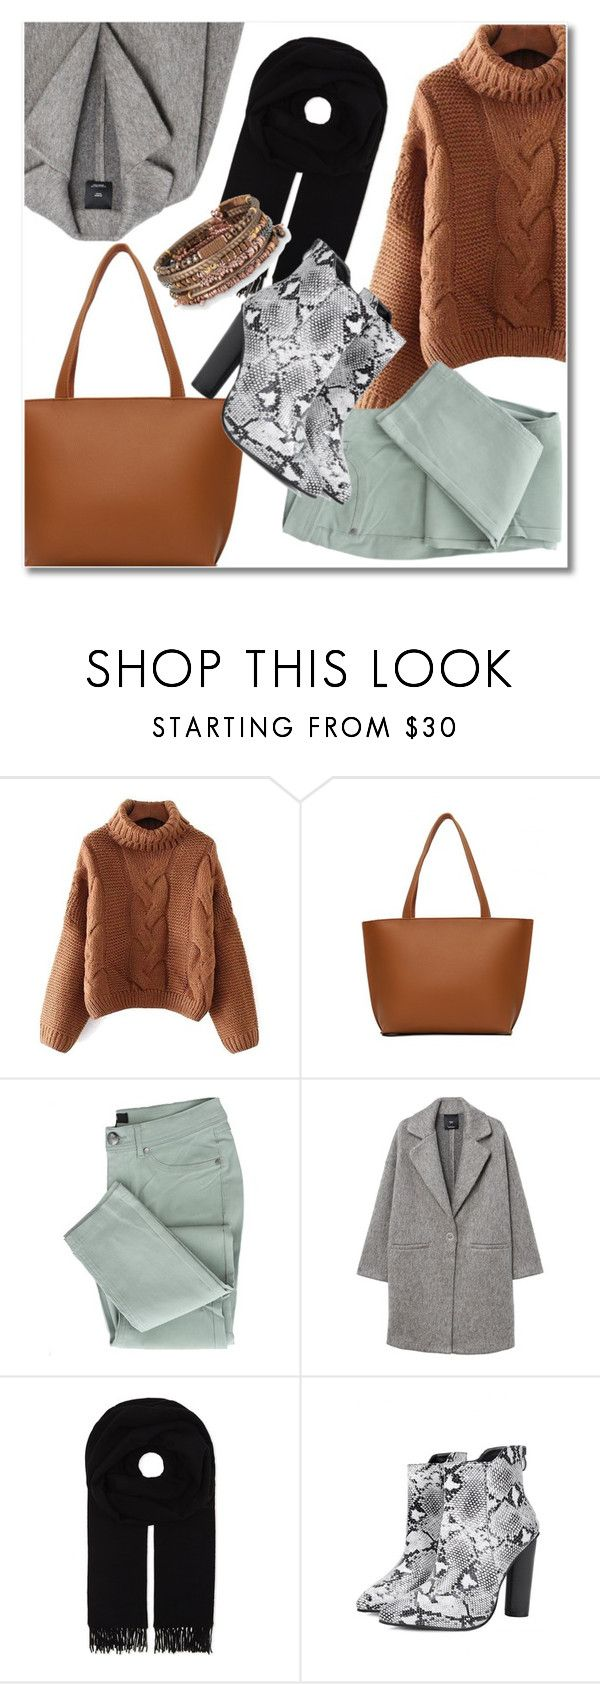 """Sweater weather"" by laurafox27 ❤ liked on Polyvore featuring MANGO, Canada Goose and Stella & Dot"